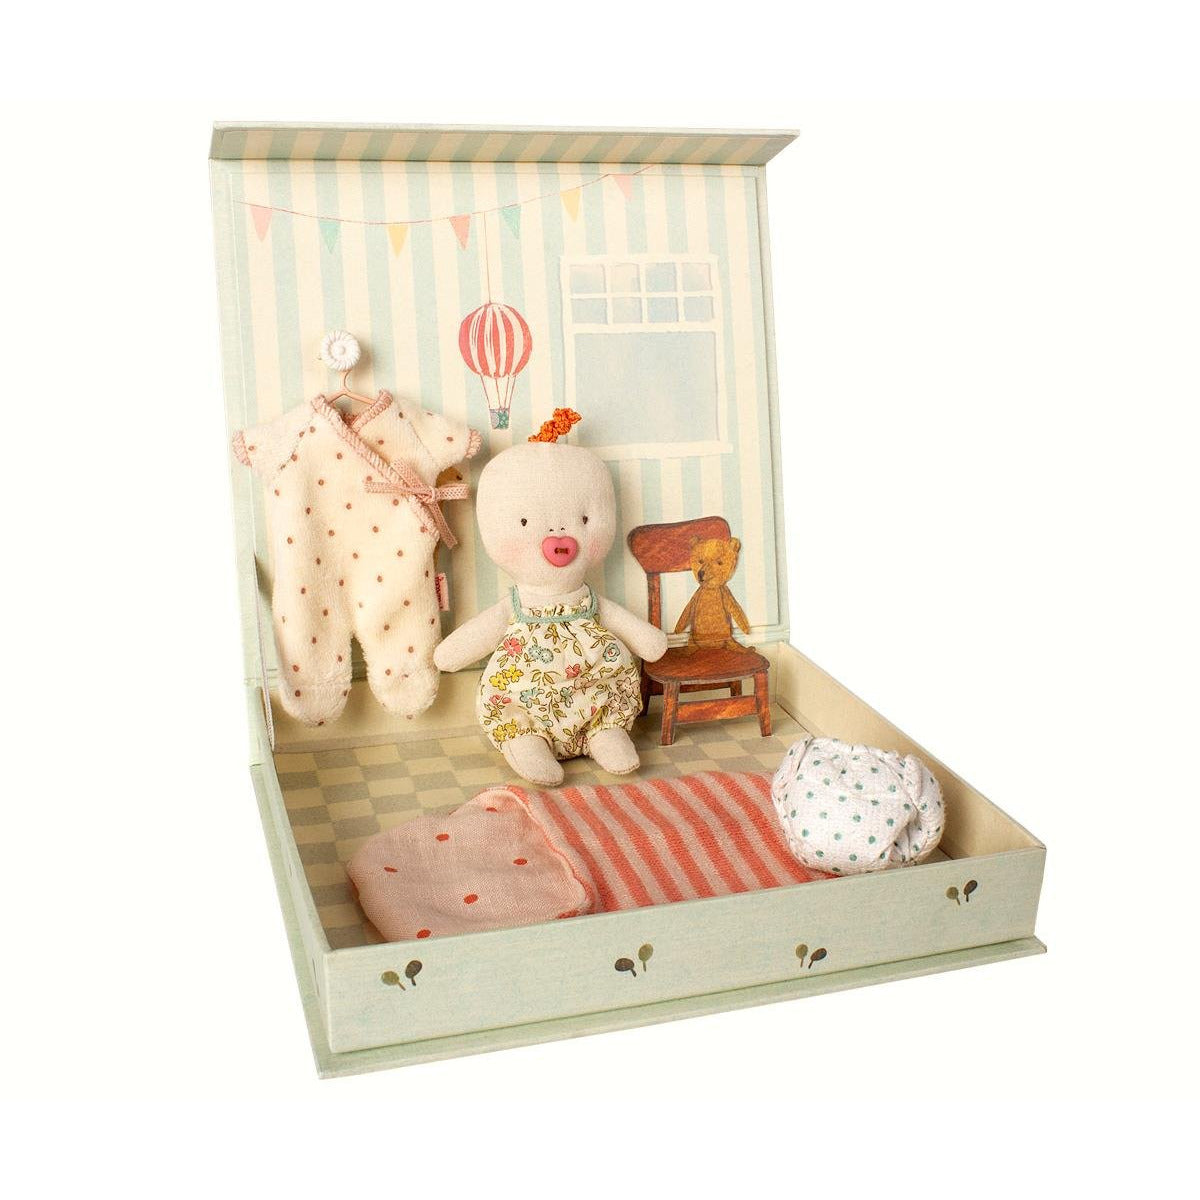 Ginger Baby Room Playset